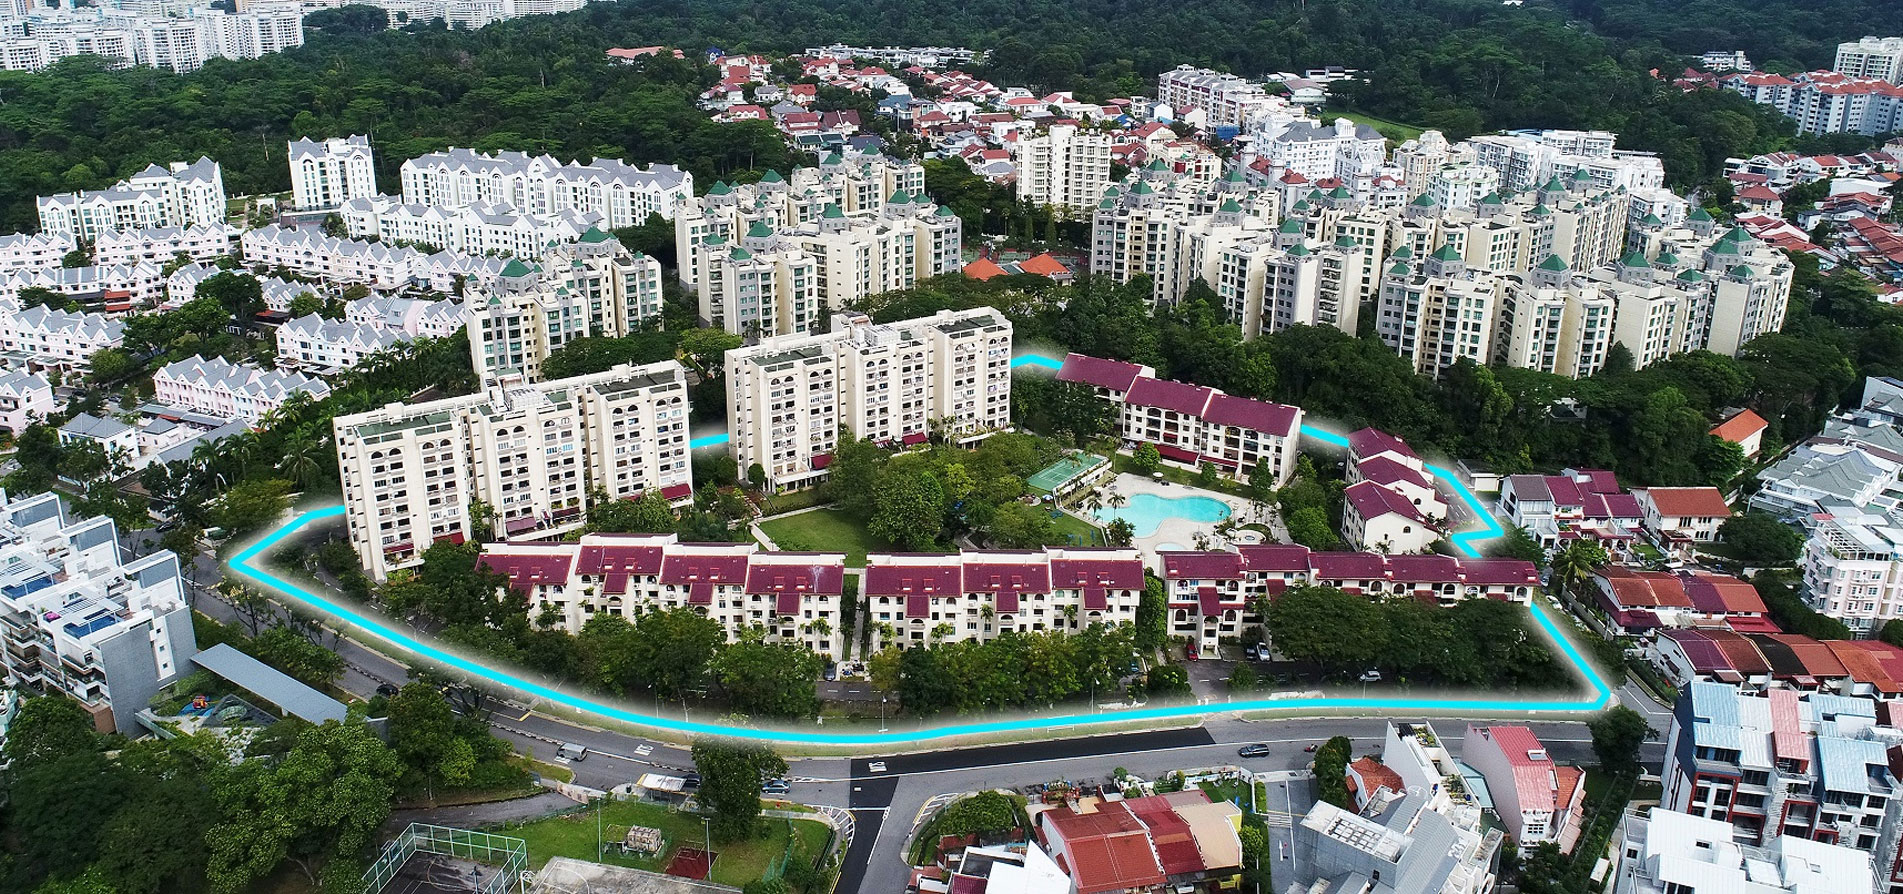 forett-at-bukit-timah-condo-freehold-former-goodluck-garden-singapore